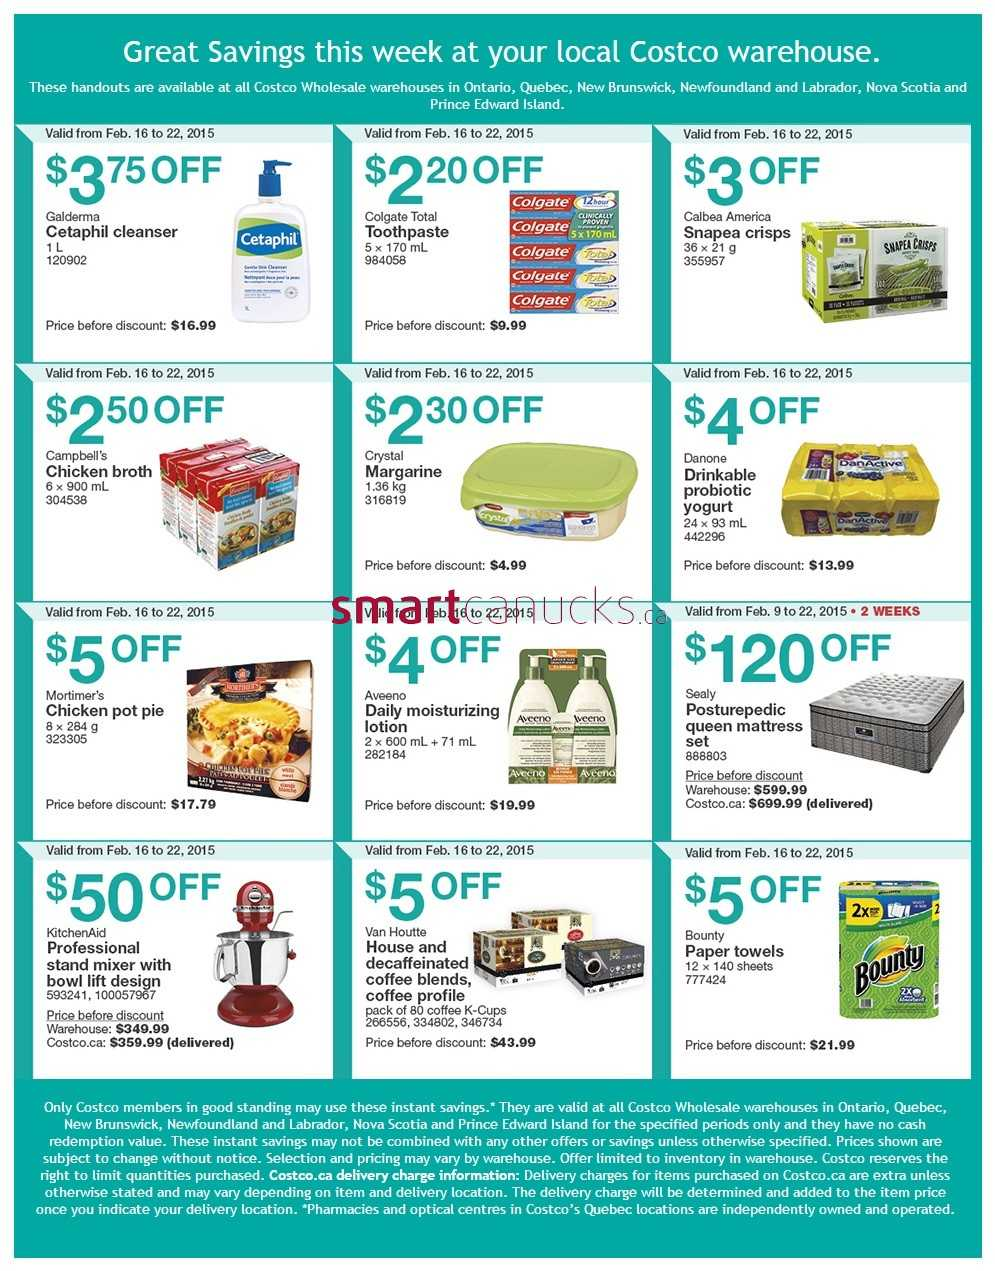 Costco weekly savings on qc amp atlantic canada february 16 to 22